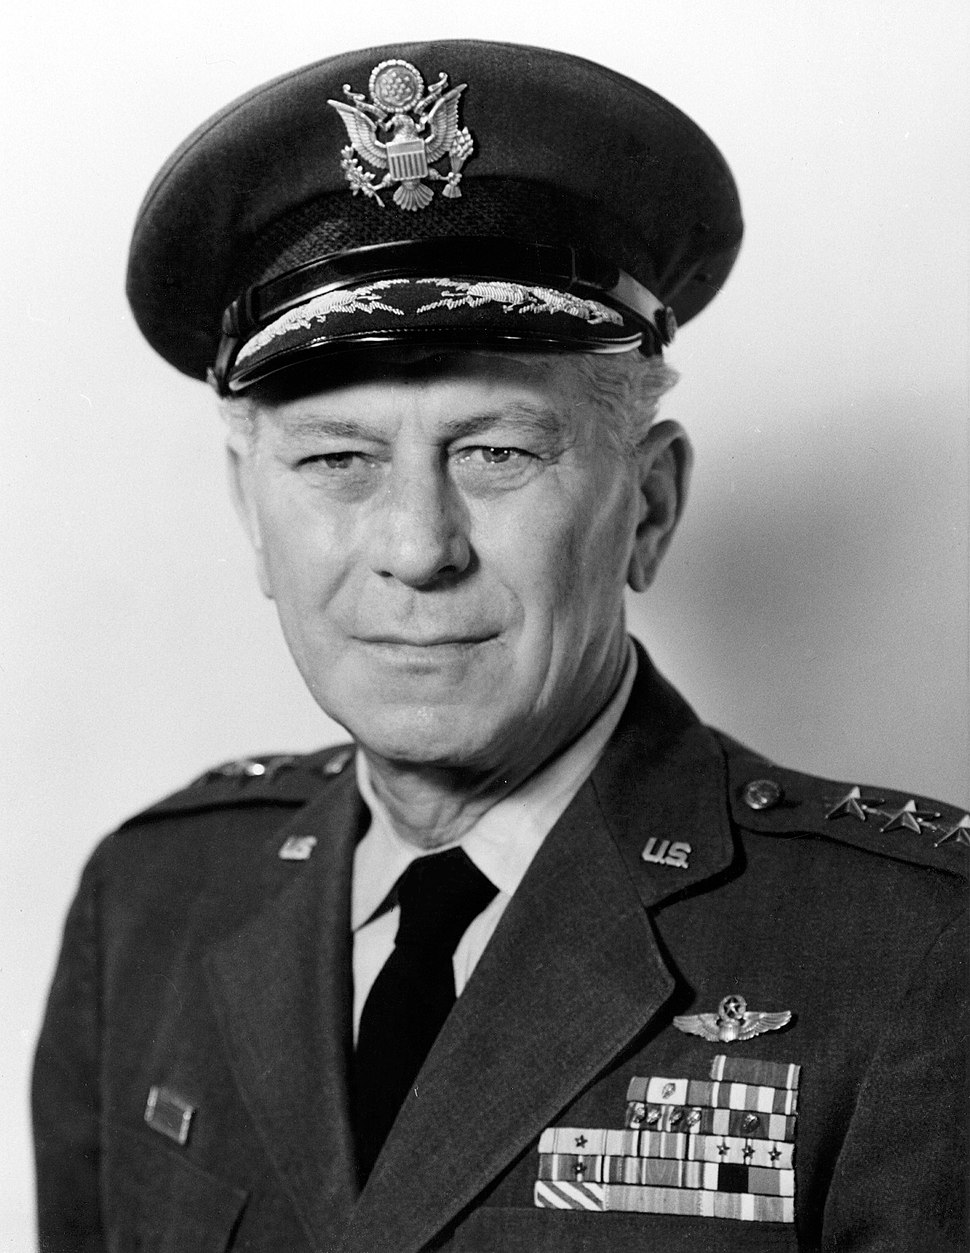 Frank A. Armstrong, official portrait